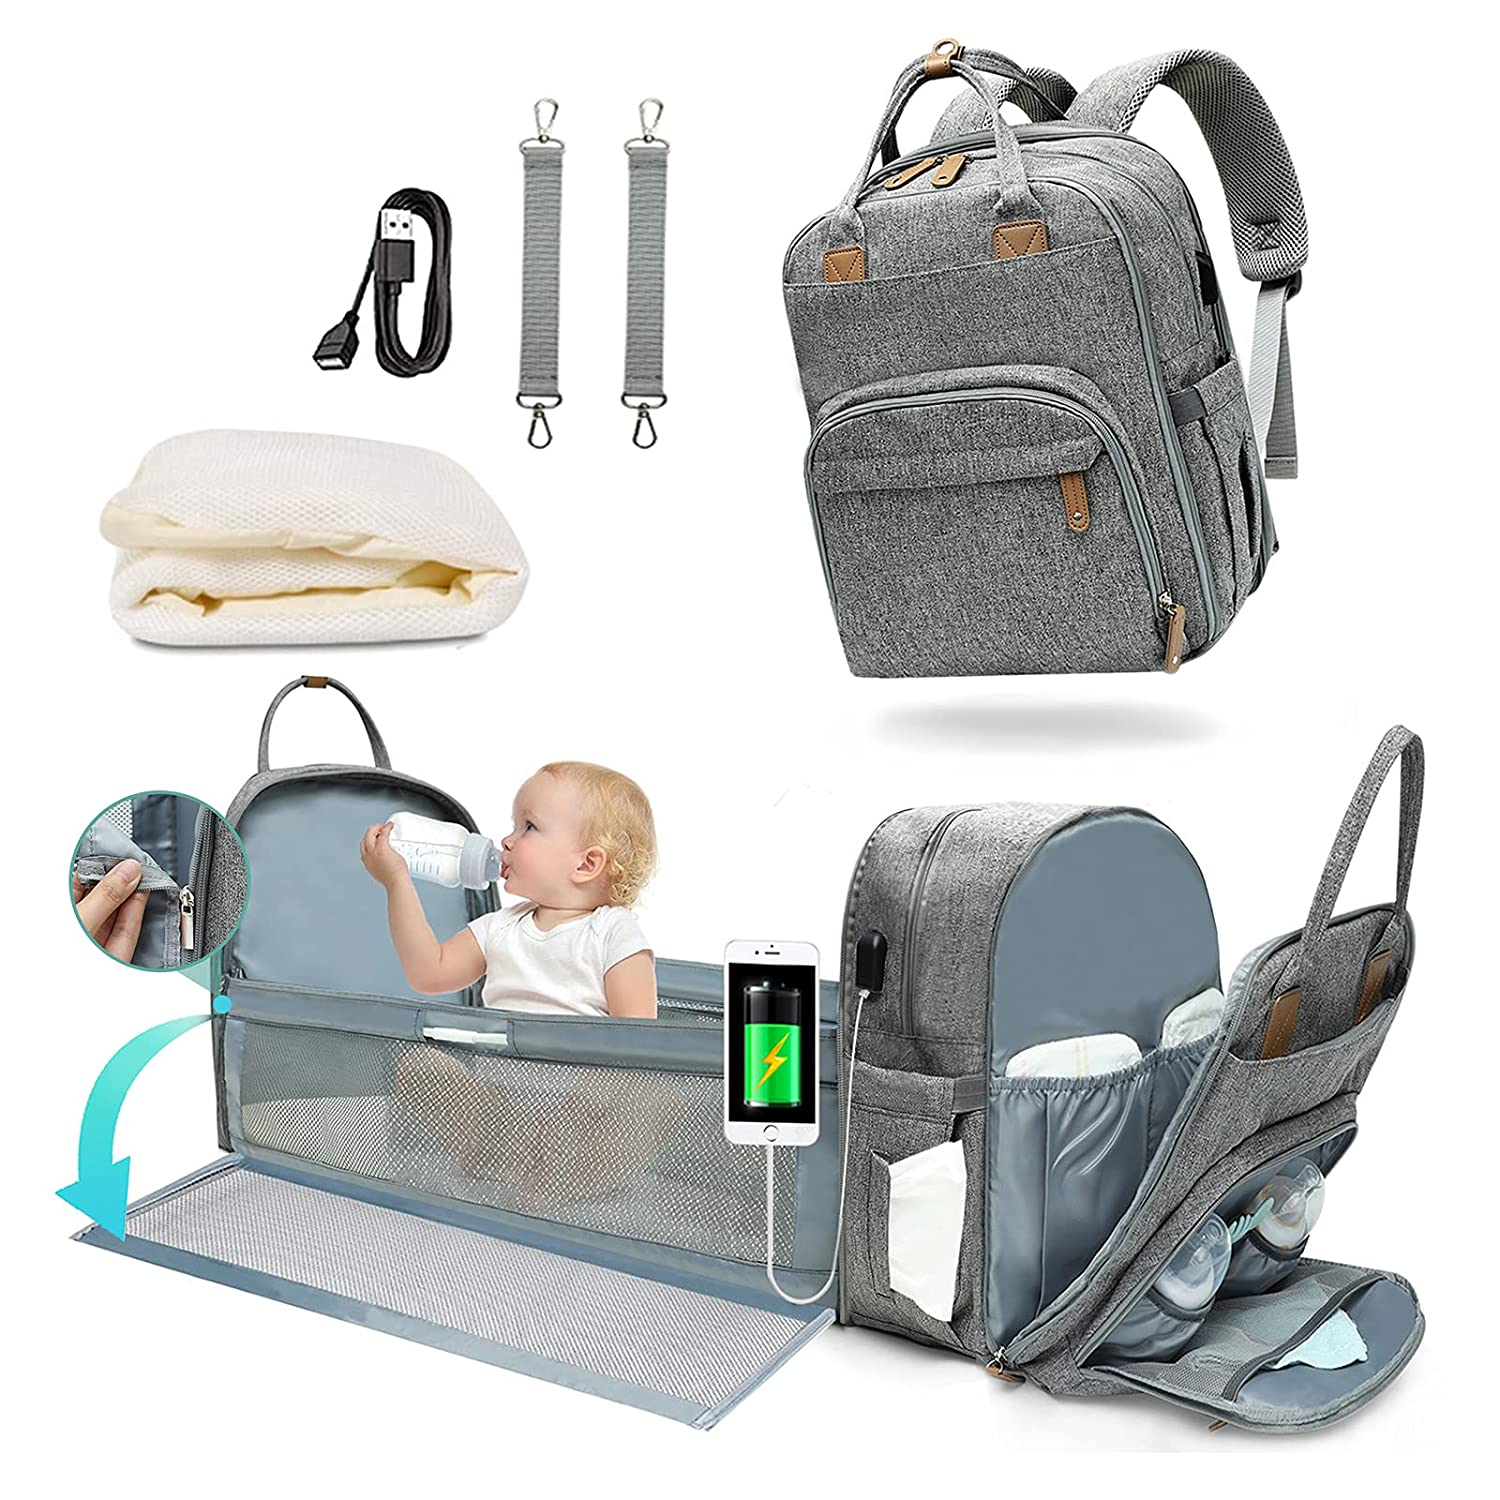 Diaper Bag Backpack with Changing Station Mominside 3 in 1 Baby Bag with 20 Pockets Detachable Foldable Bassinet Bed Mommy Bag 4 Insulated Pockets, Stroller Straps, USB Charging Port Grey